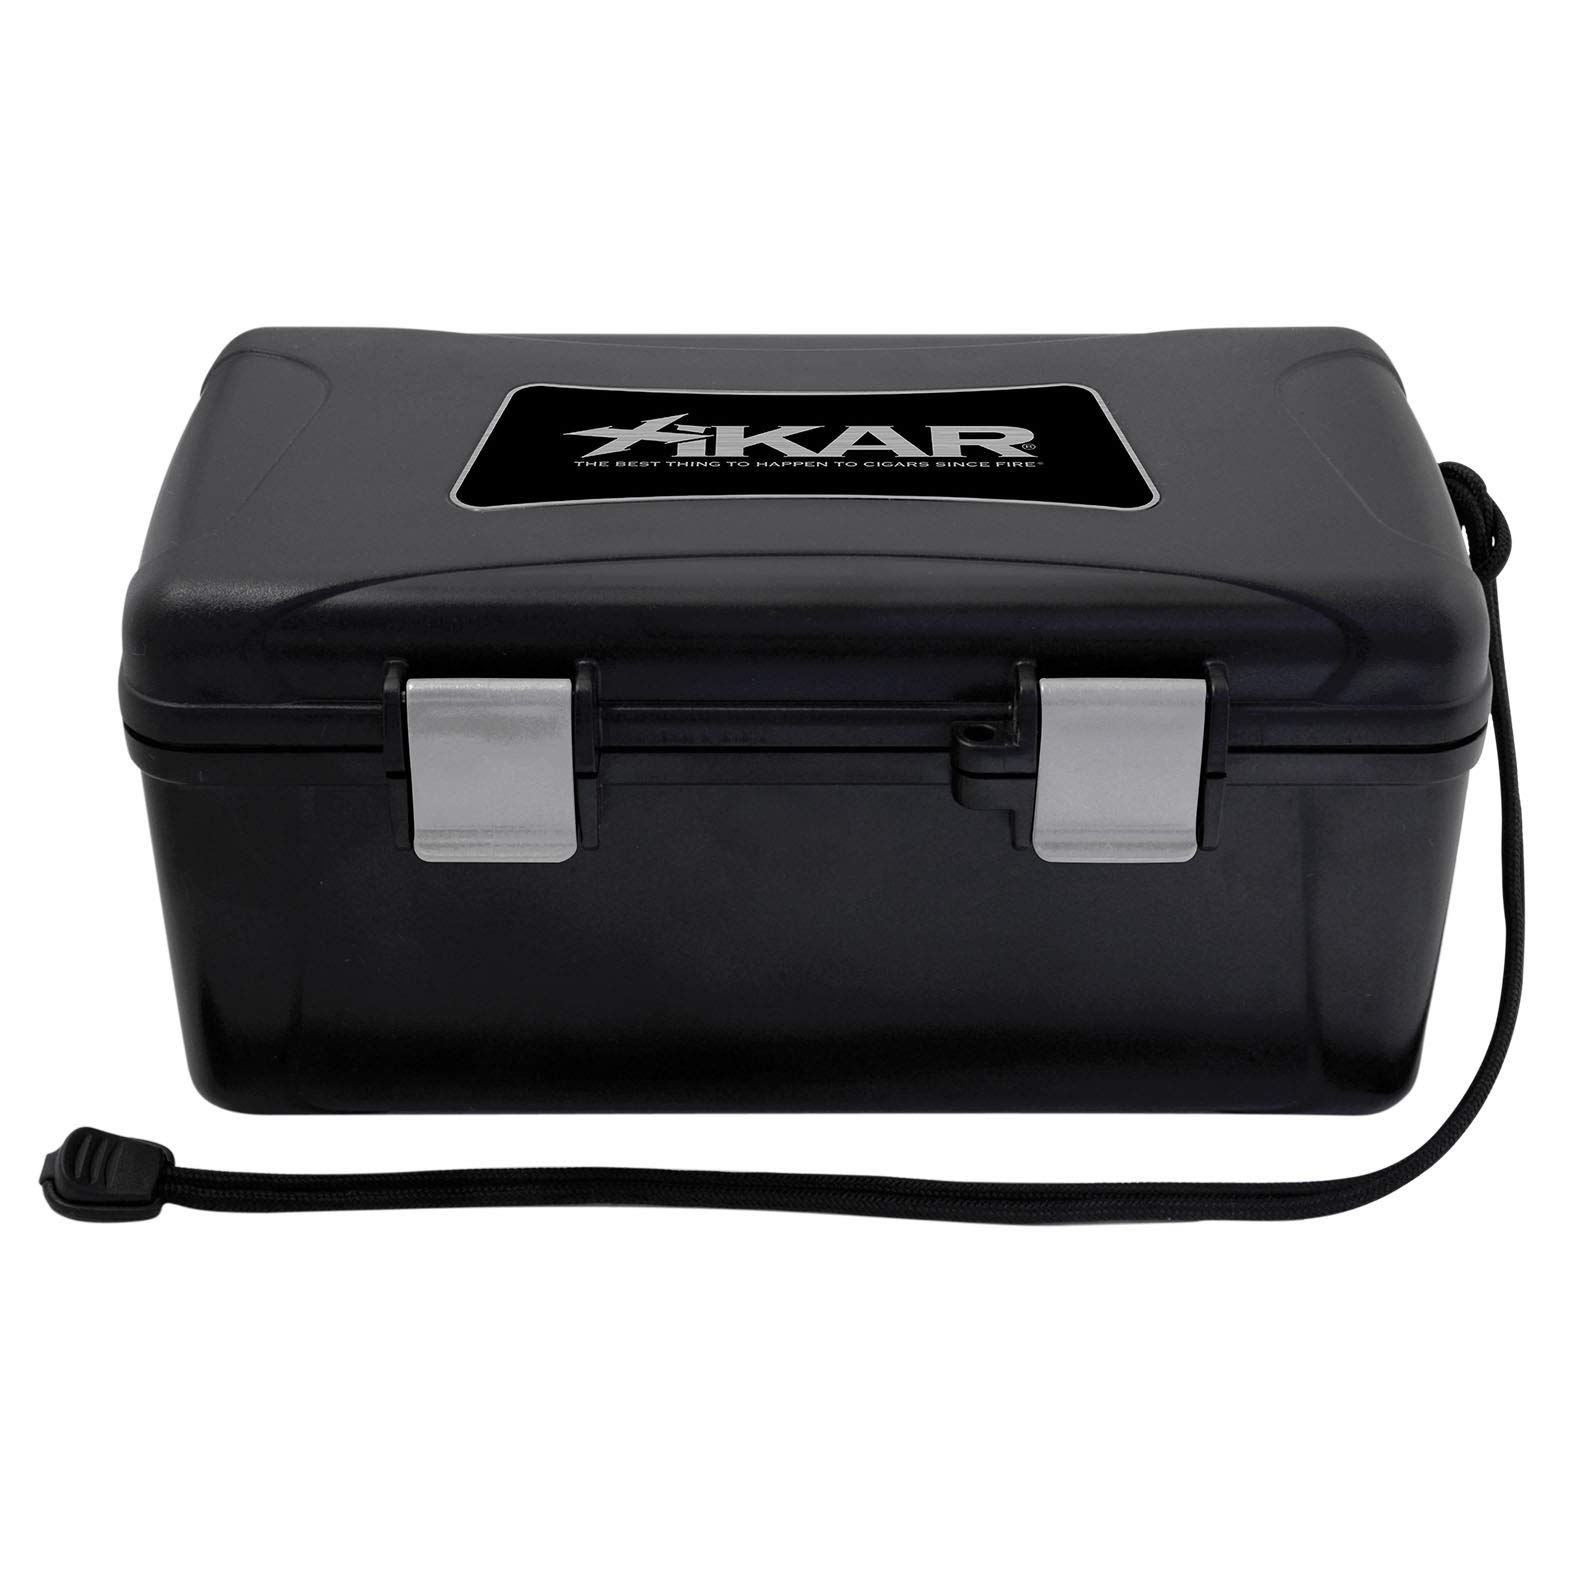 X-treme Protection Rugged Cigar Travel Case holds 15 ct